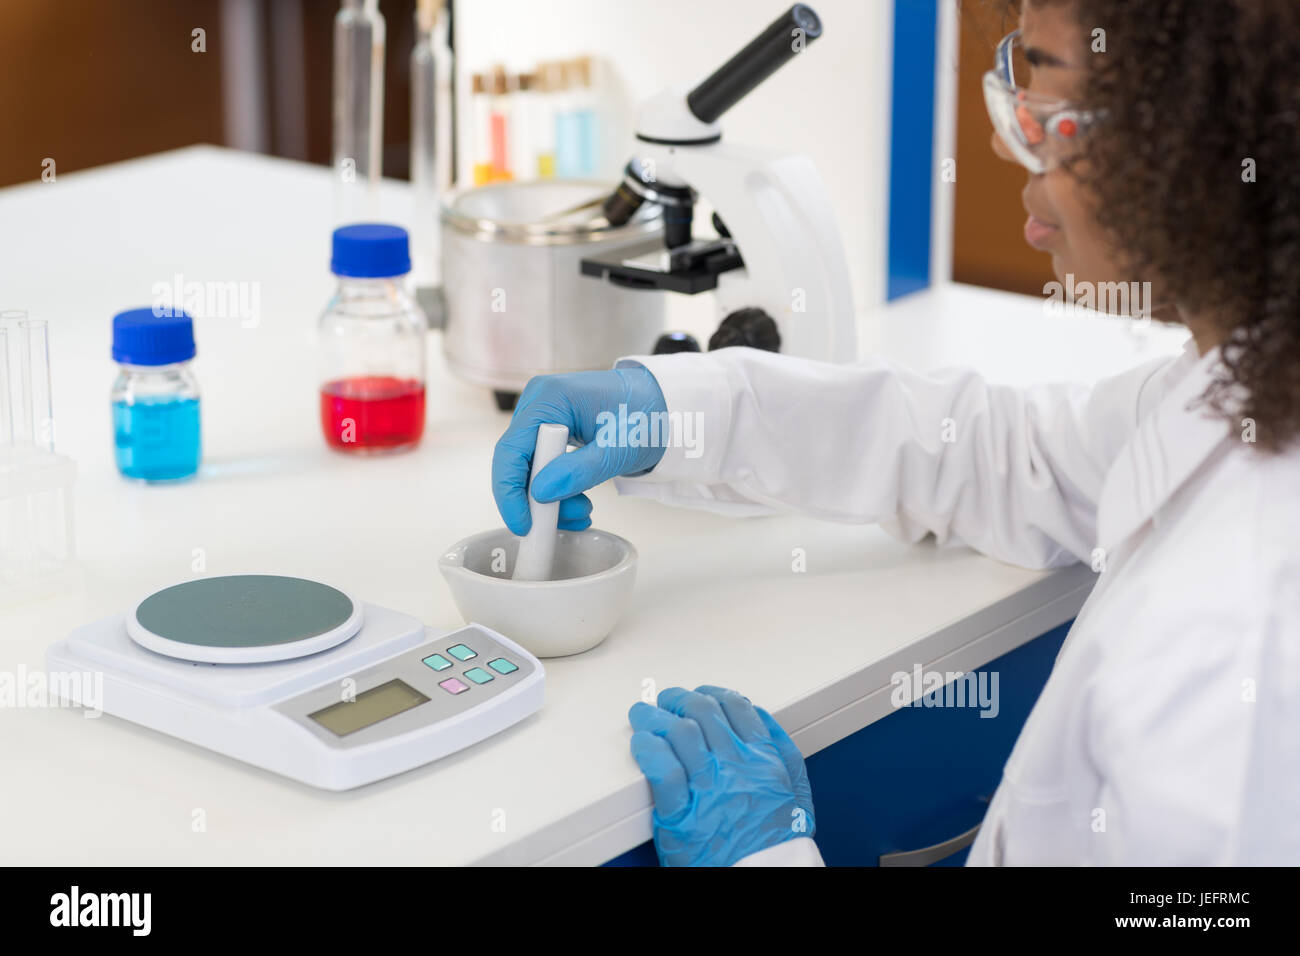 Female Scientist Using Mortar Working In Laboratory Making Chemicals Powder For Experiment, Researcher Mix Race - Stock Image